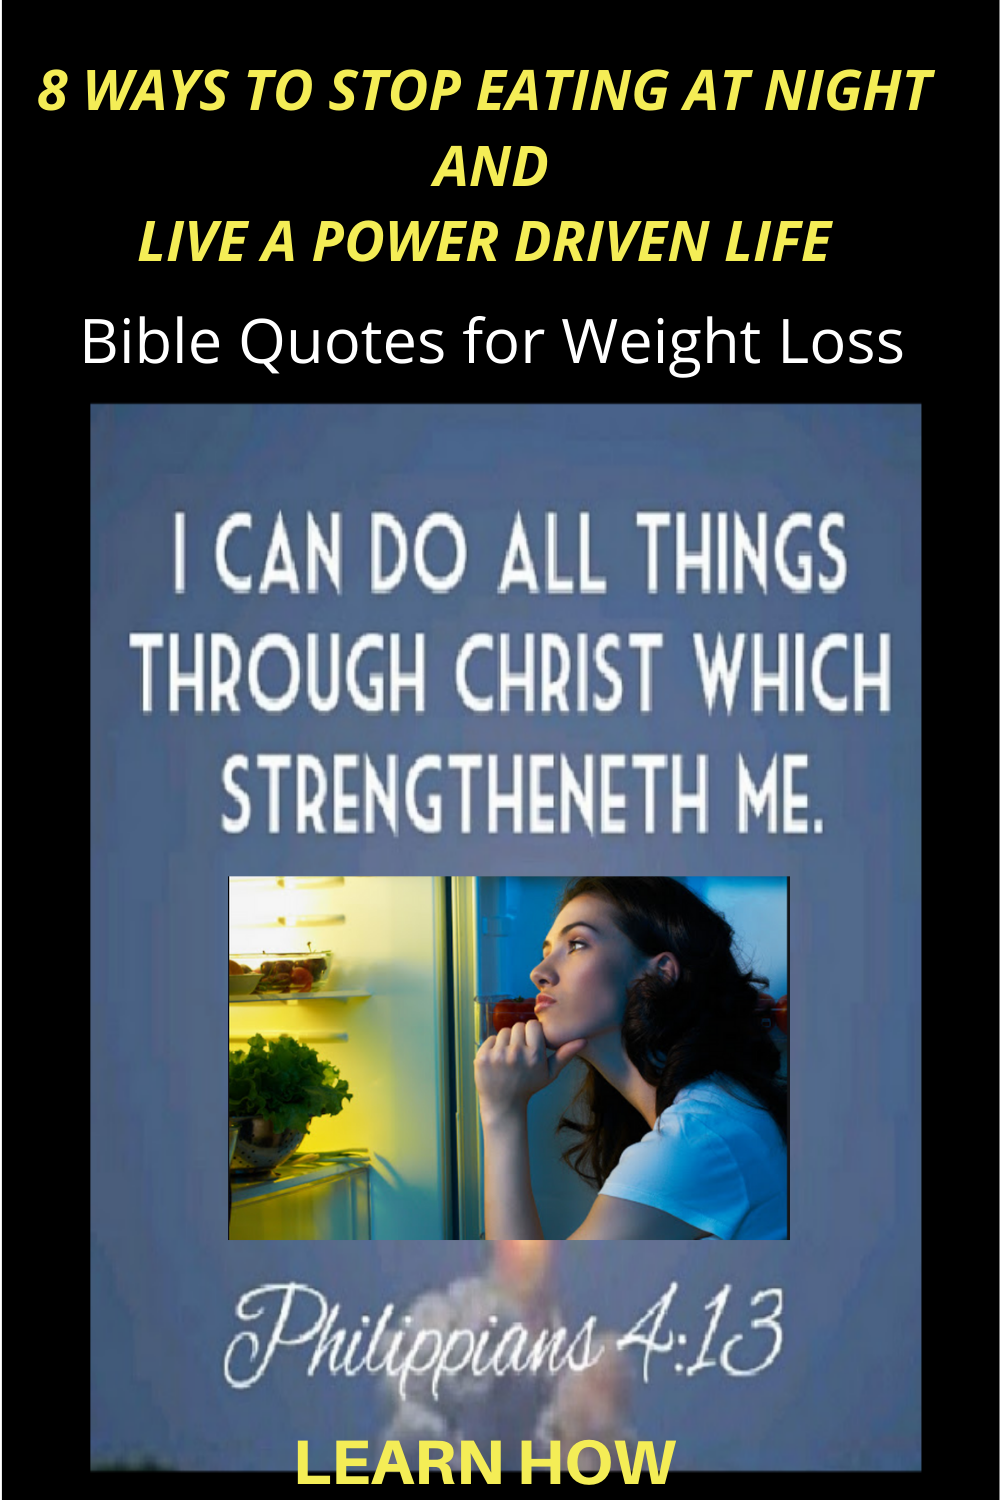 Stop eating at night - weight loss help for christians